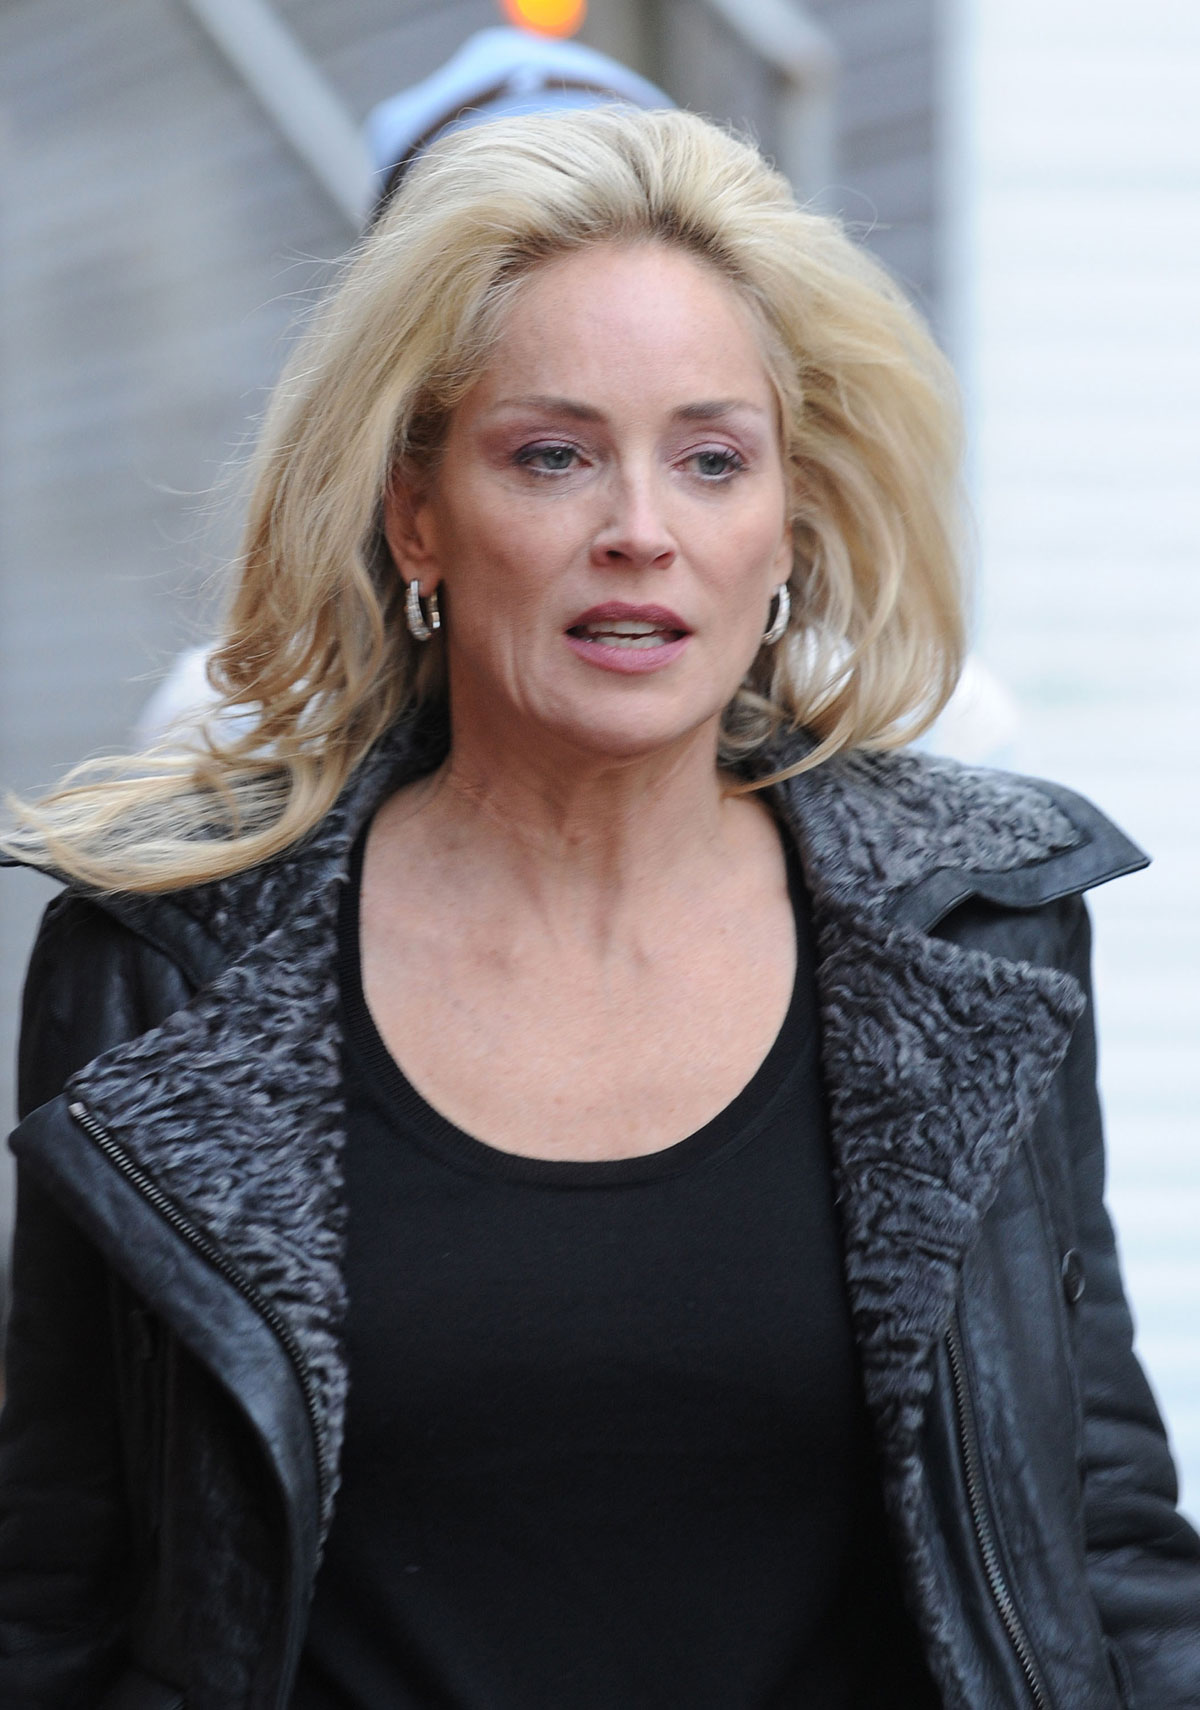 Sharon Stone On The Set Of Fading Gigolo In New York